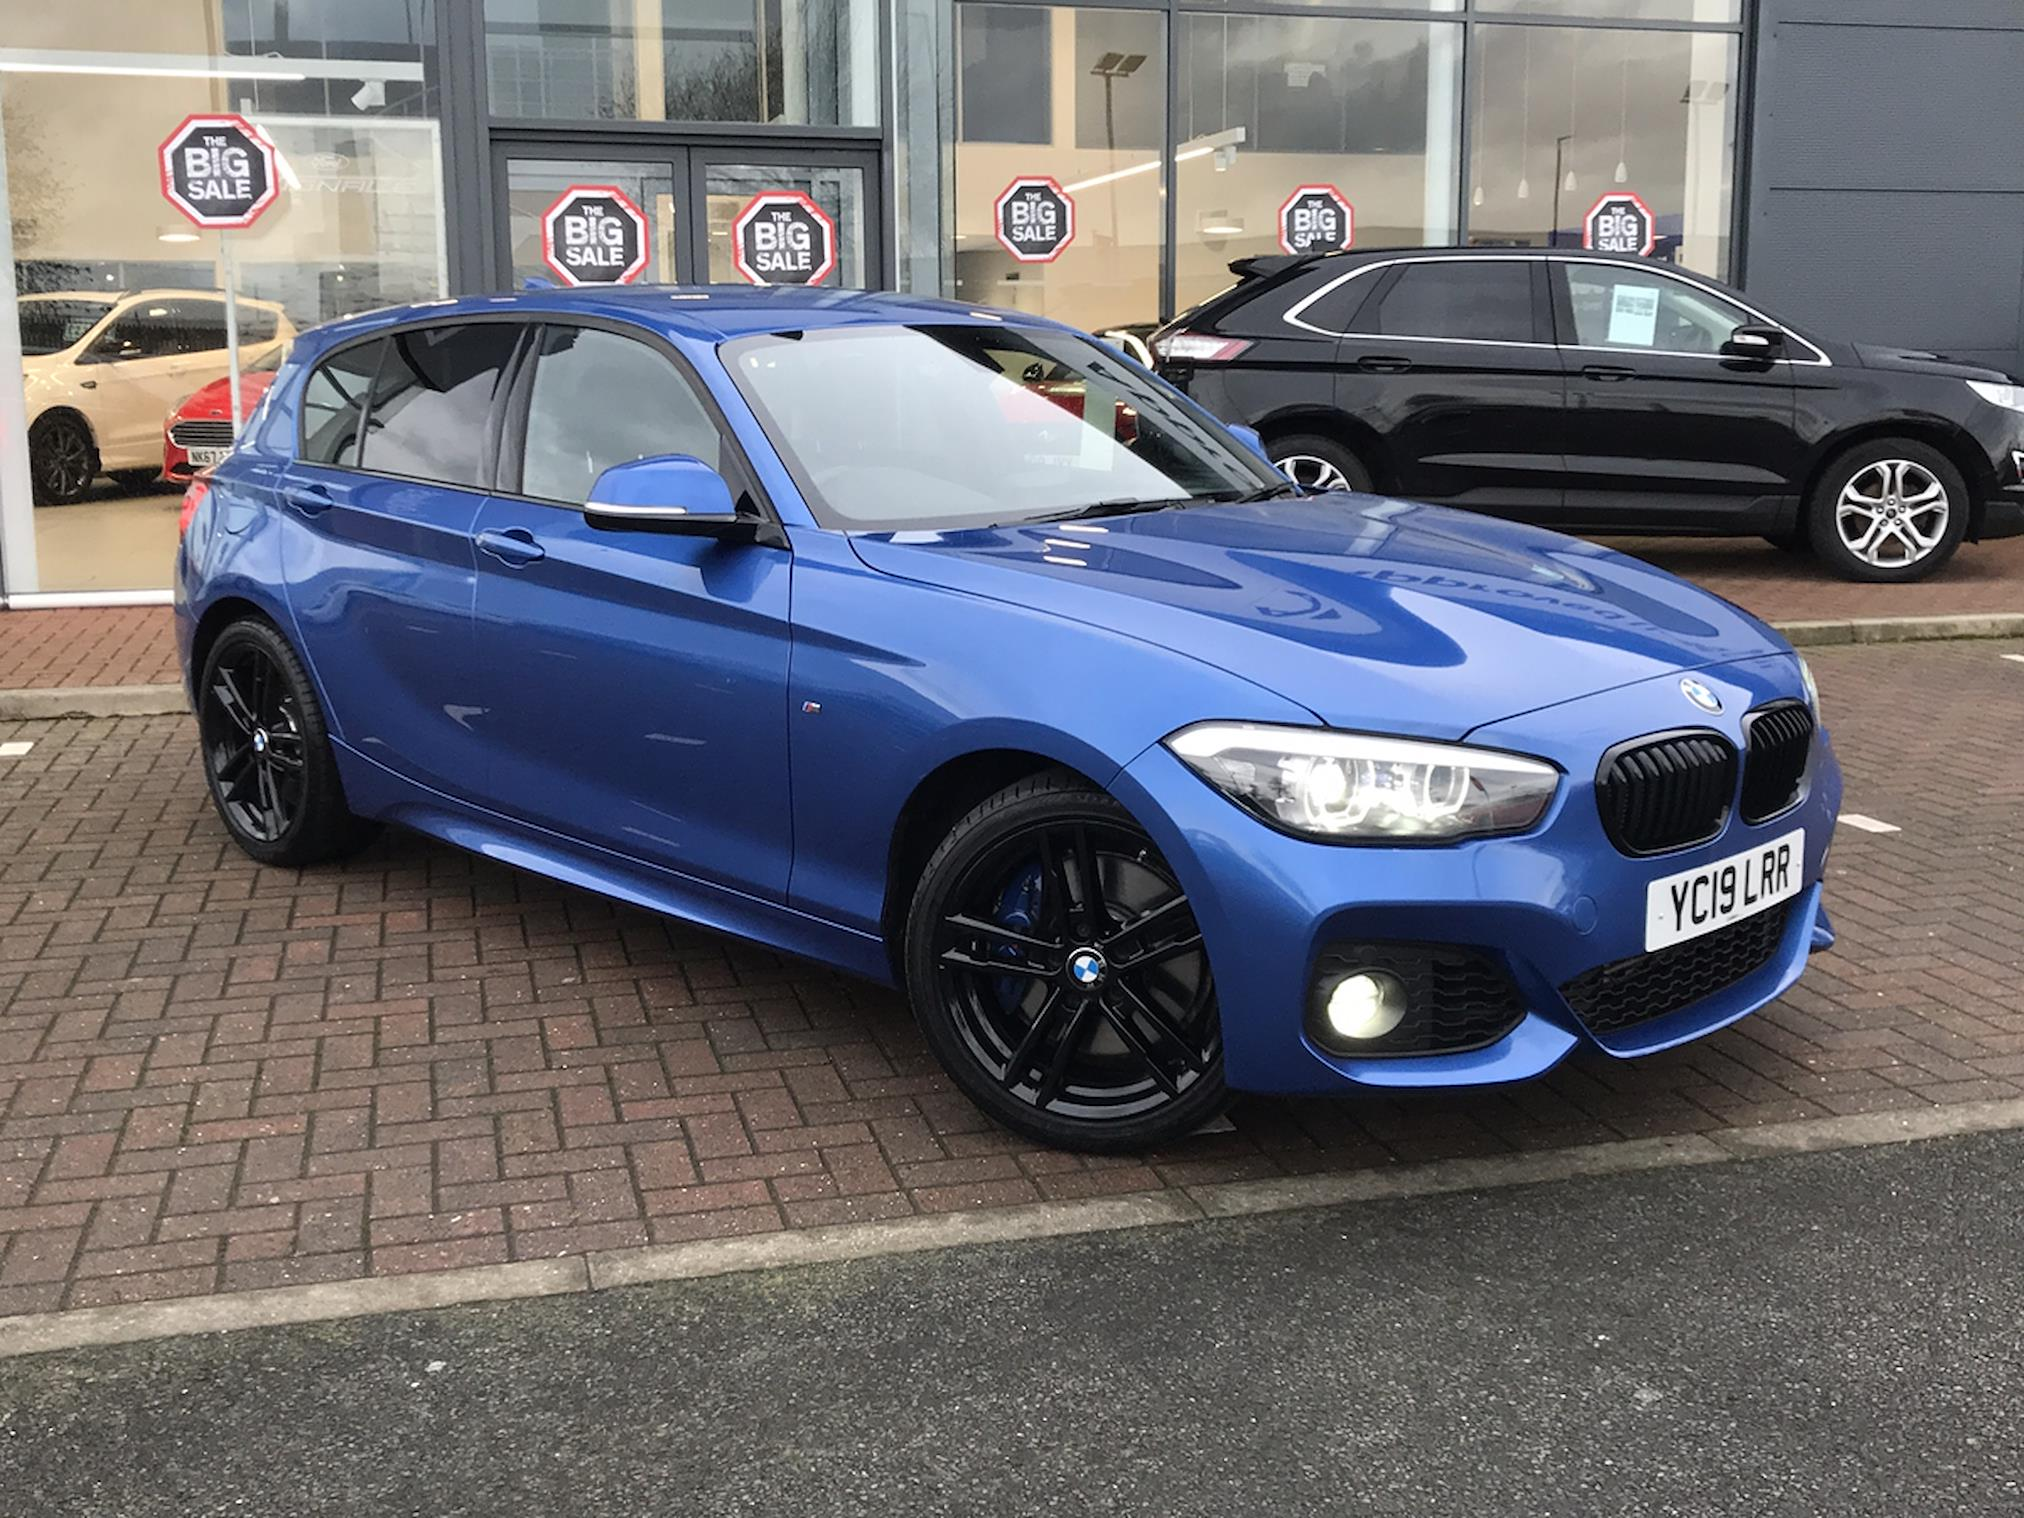 Nearly New 1 Series Bmw 118i 1 5 M Sport Shadow Edition 5dr 2019 Lookers